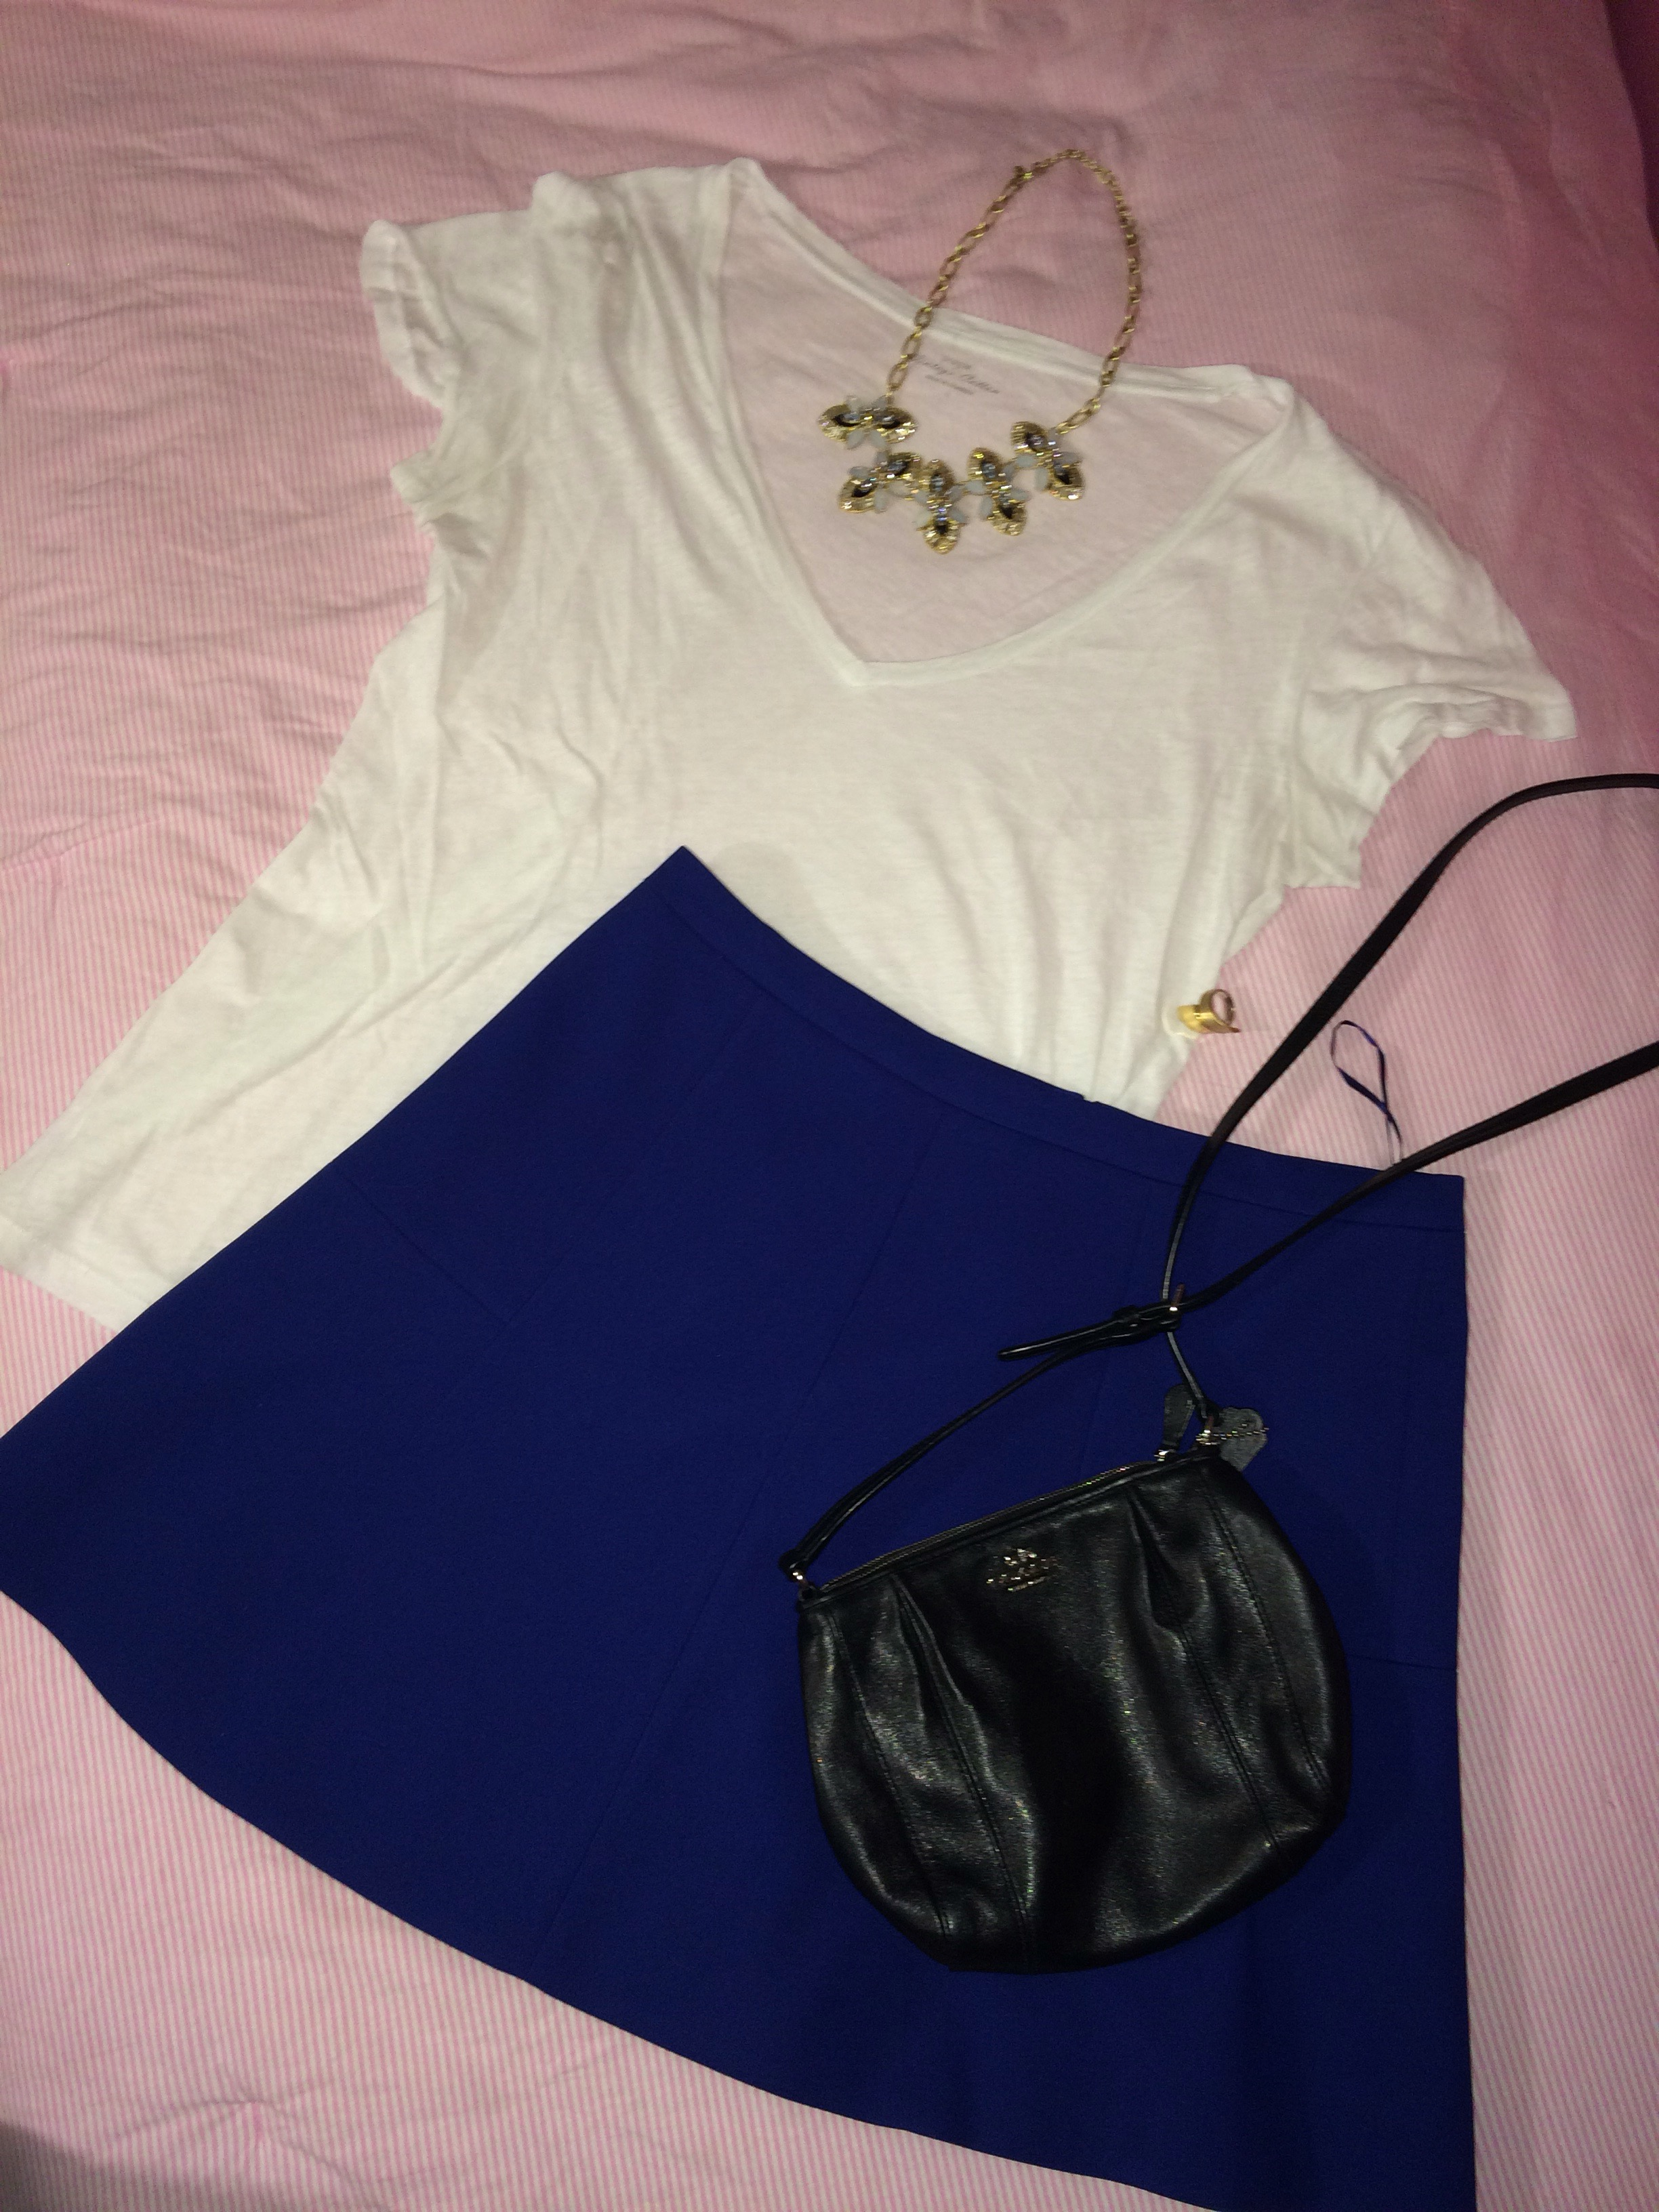 white t-shirt style idea with blue  skirt